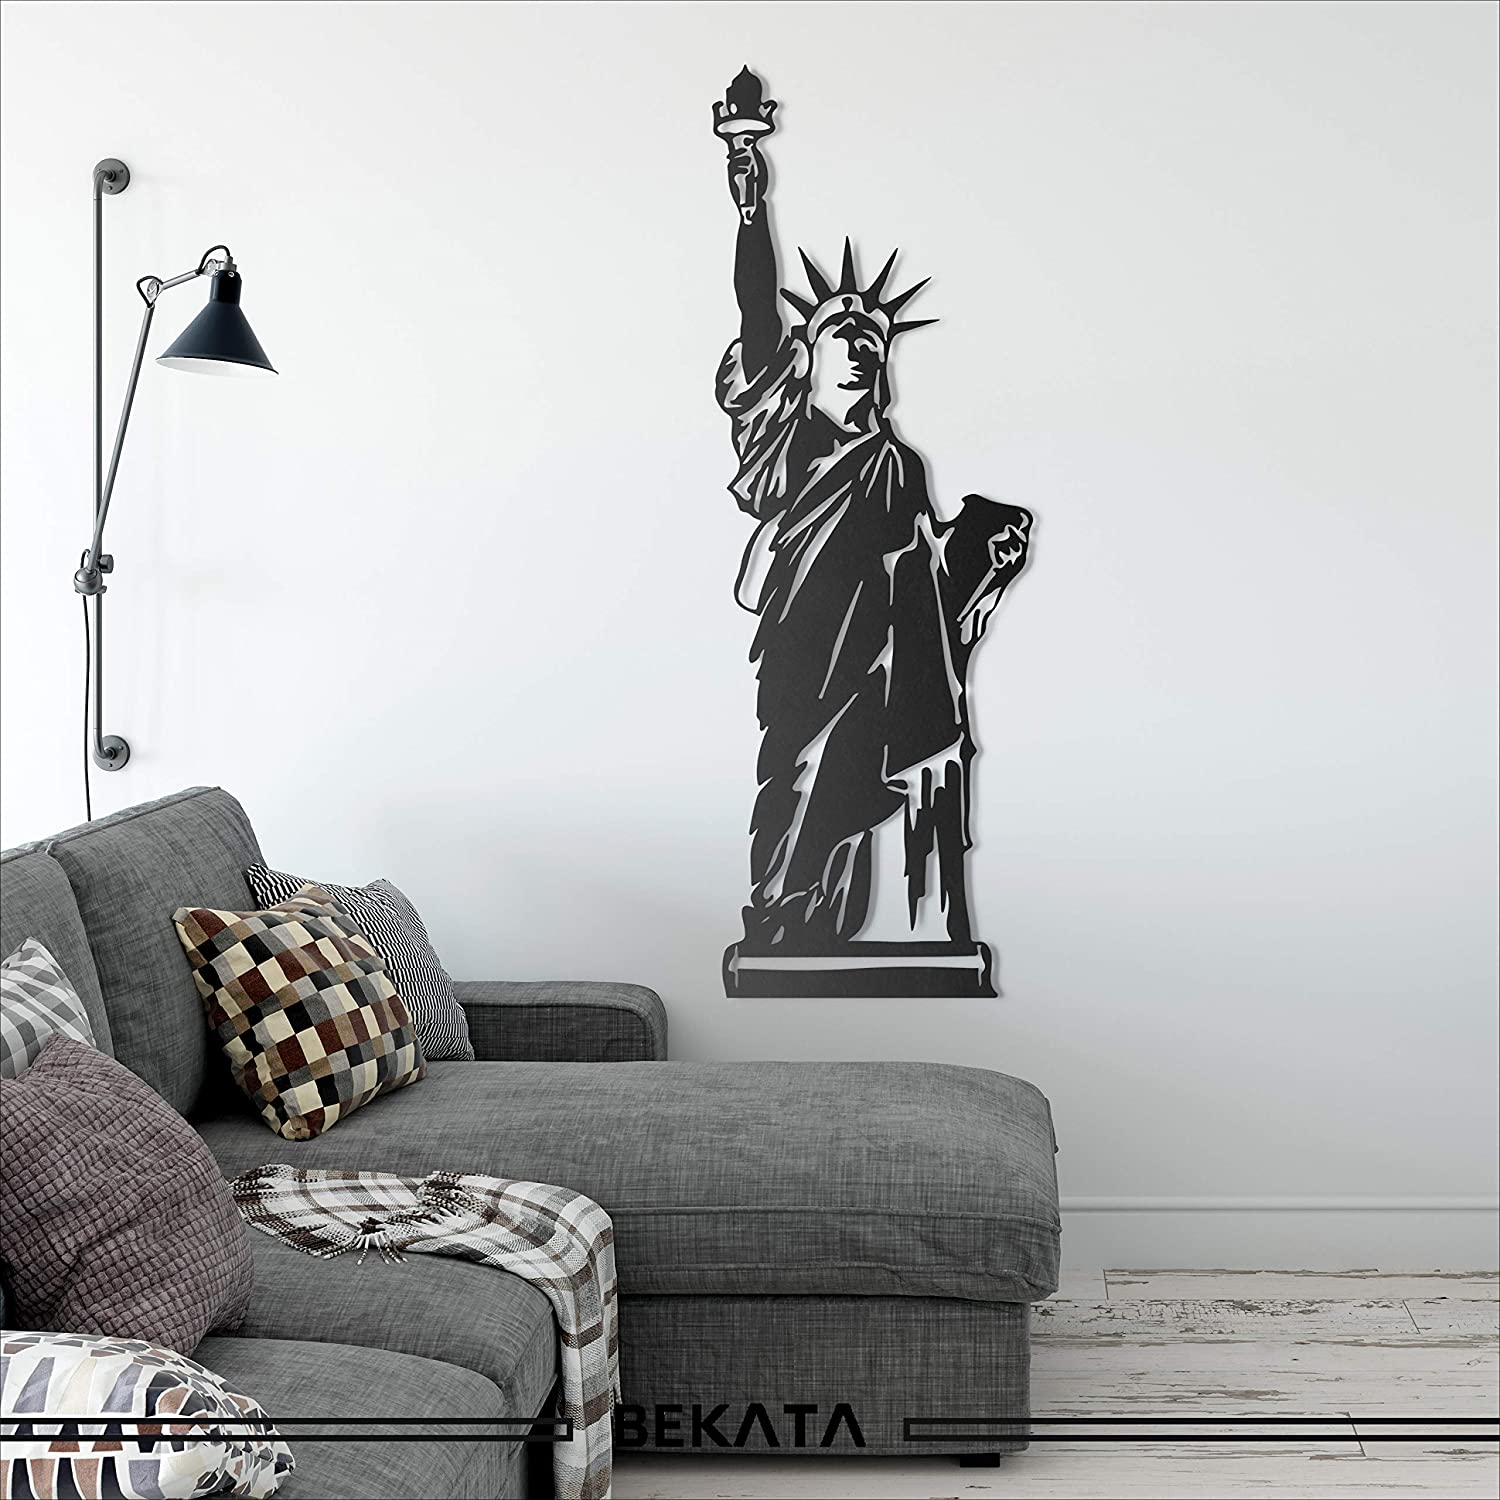 """Bekata Statue Of Liberty Metal Wall Art, Lady Liberty Metal Wall Decoration, Home, Office, Living Room, Bedroom, Housewarming Gift, Wall Hangings, Minimalism 34X100 CM /13.3""""X39.4"""" INCHES"""